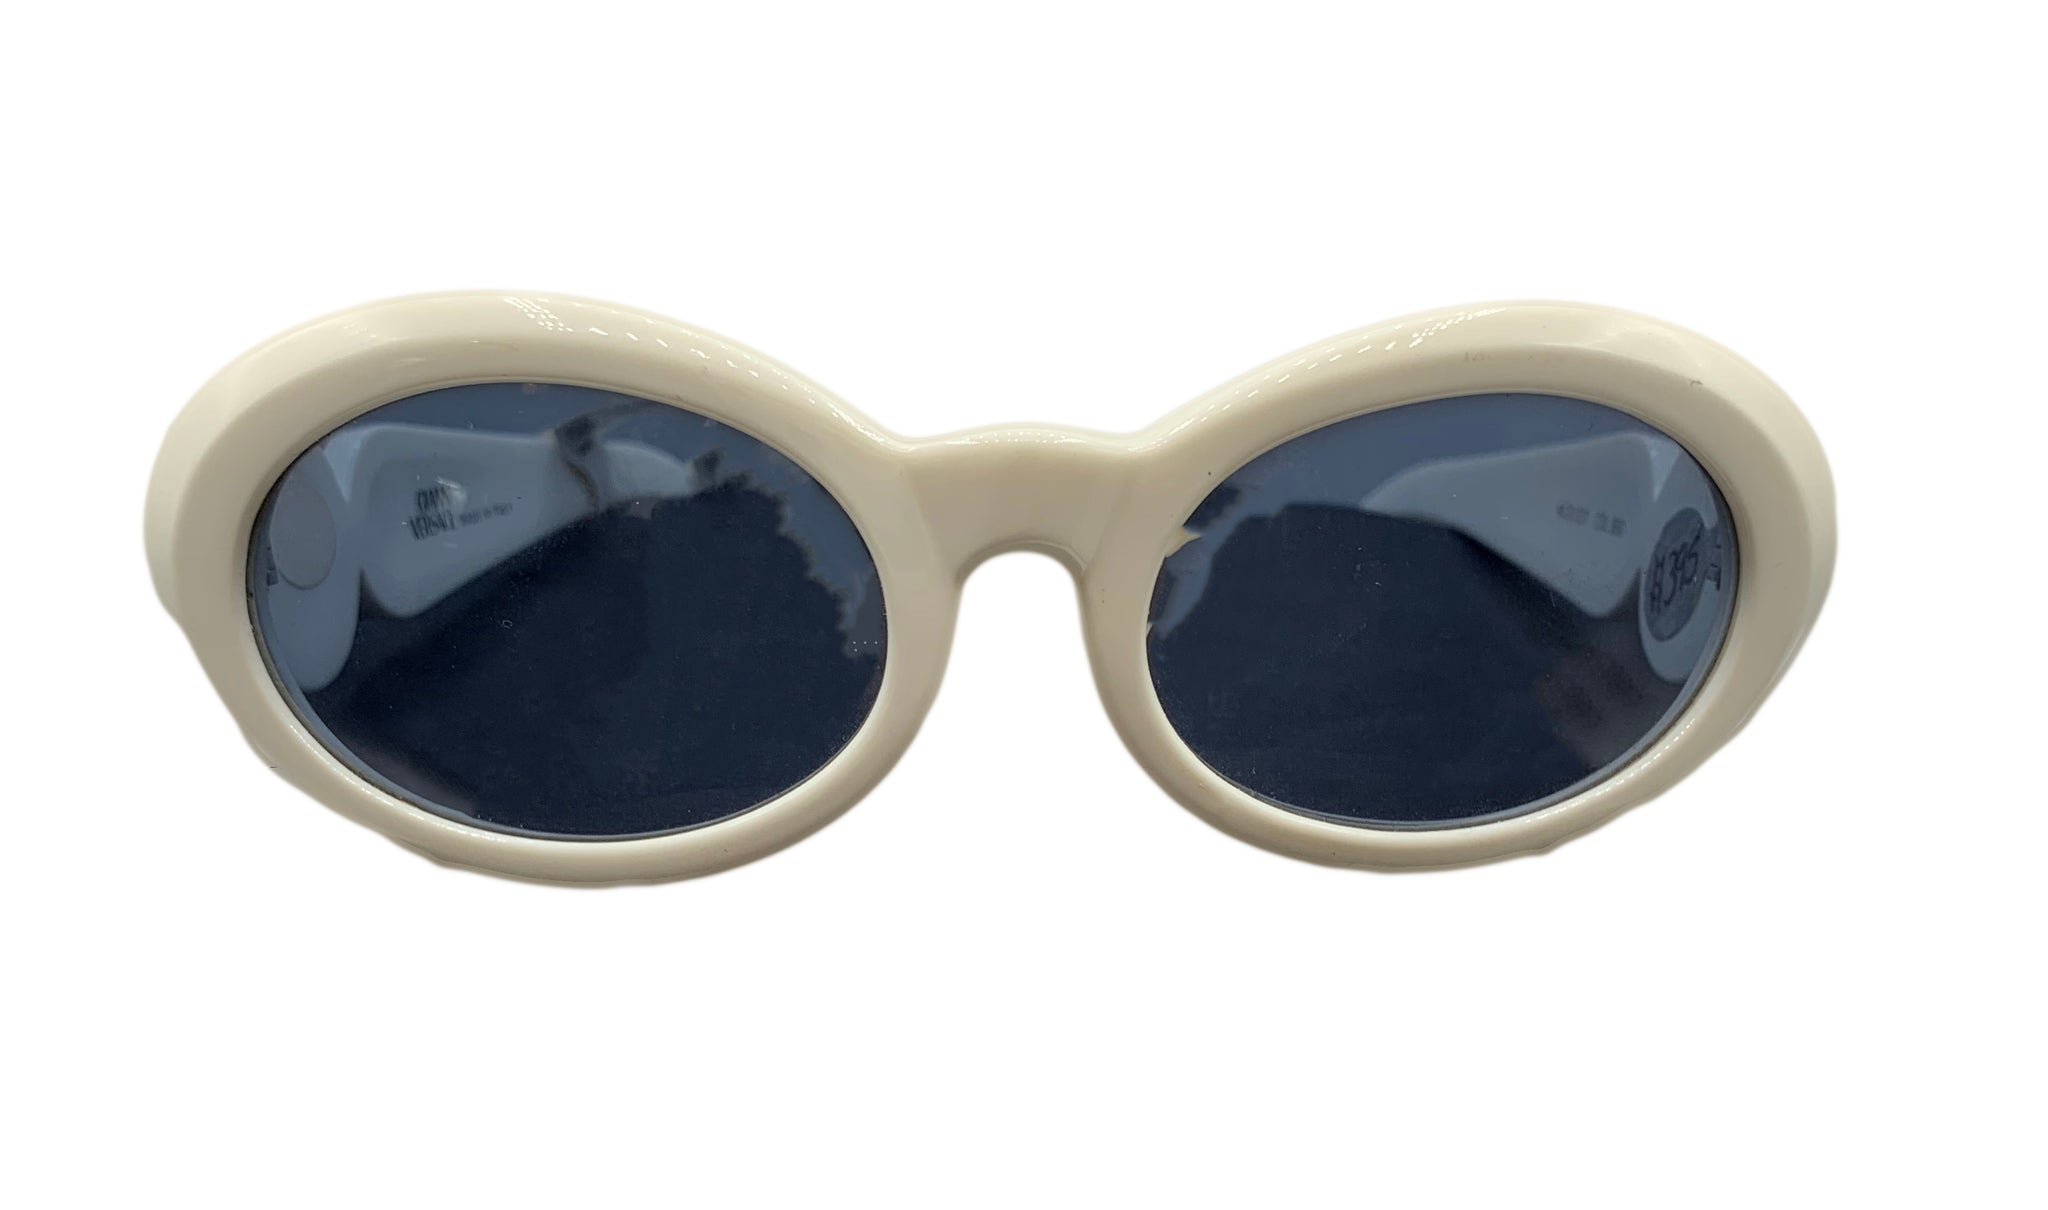 Versace 90s White Sunglasses with Medusa Heads Front  1 of 4